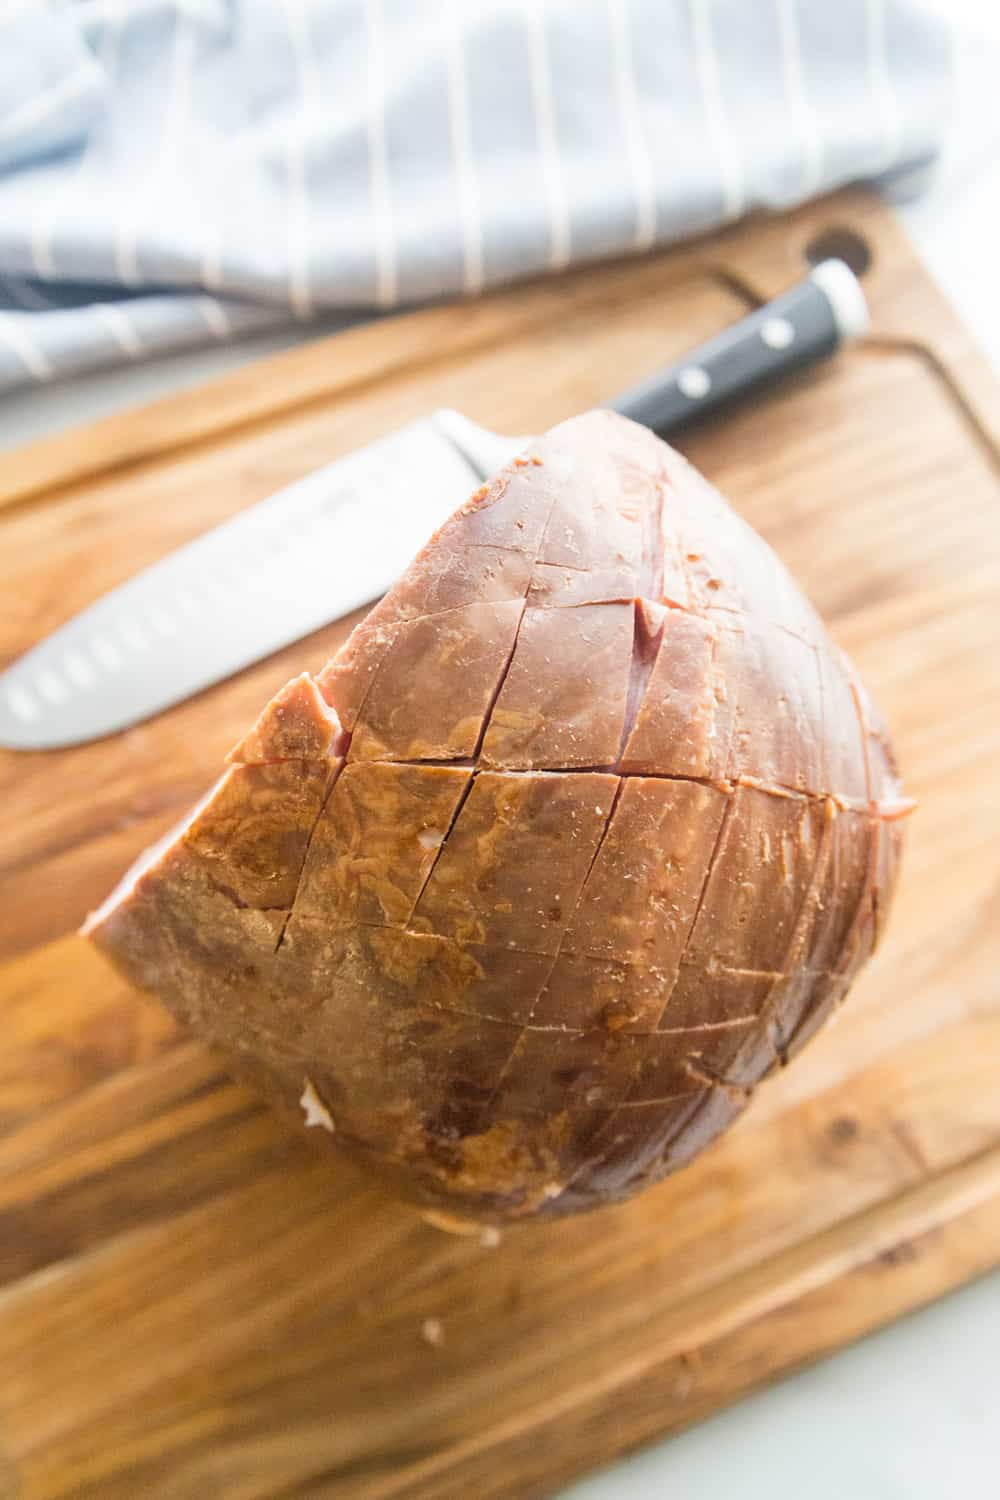 a scored ham sitting on a bamboo cutting board next to a knife